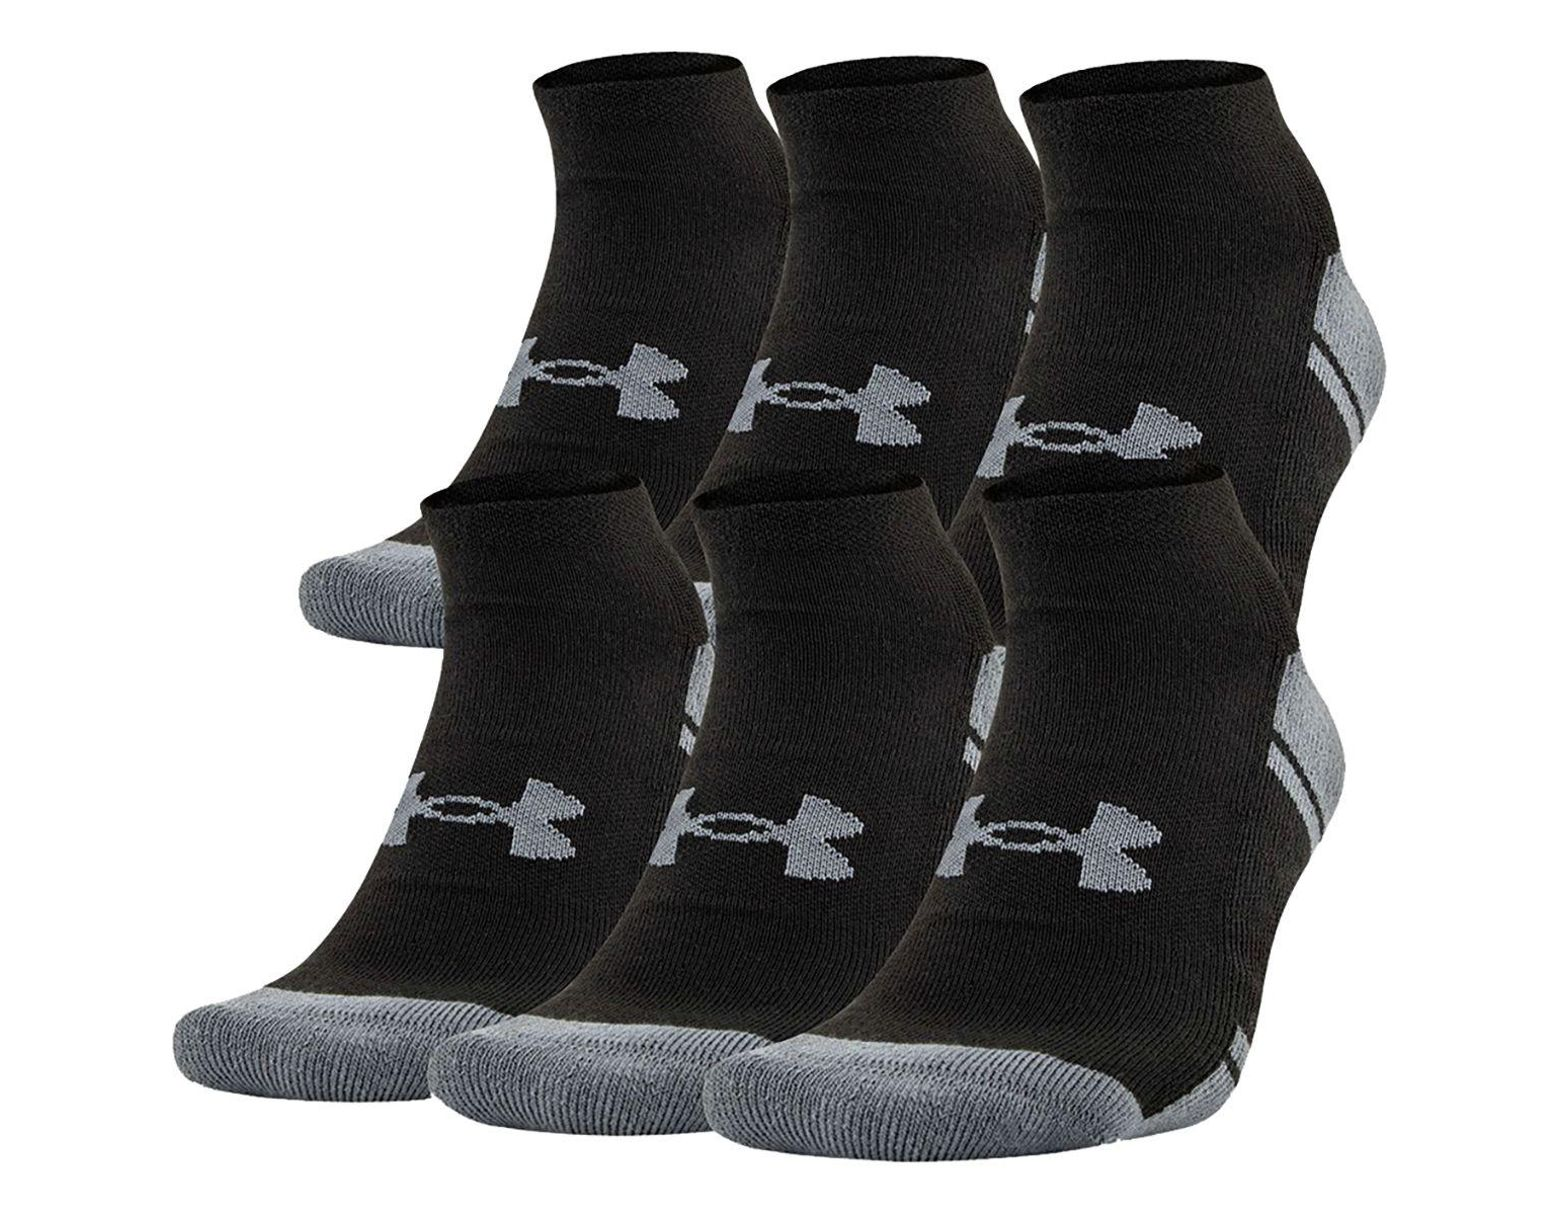 superior quality 39ee1 0d0cd Under Armour Men s Ua Resistor Iii No Show Socks 6-pack in Black for Men -  Save 5% - Lyst